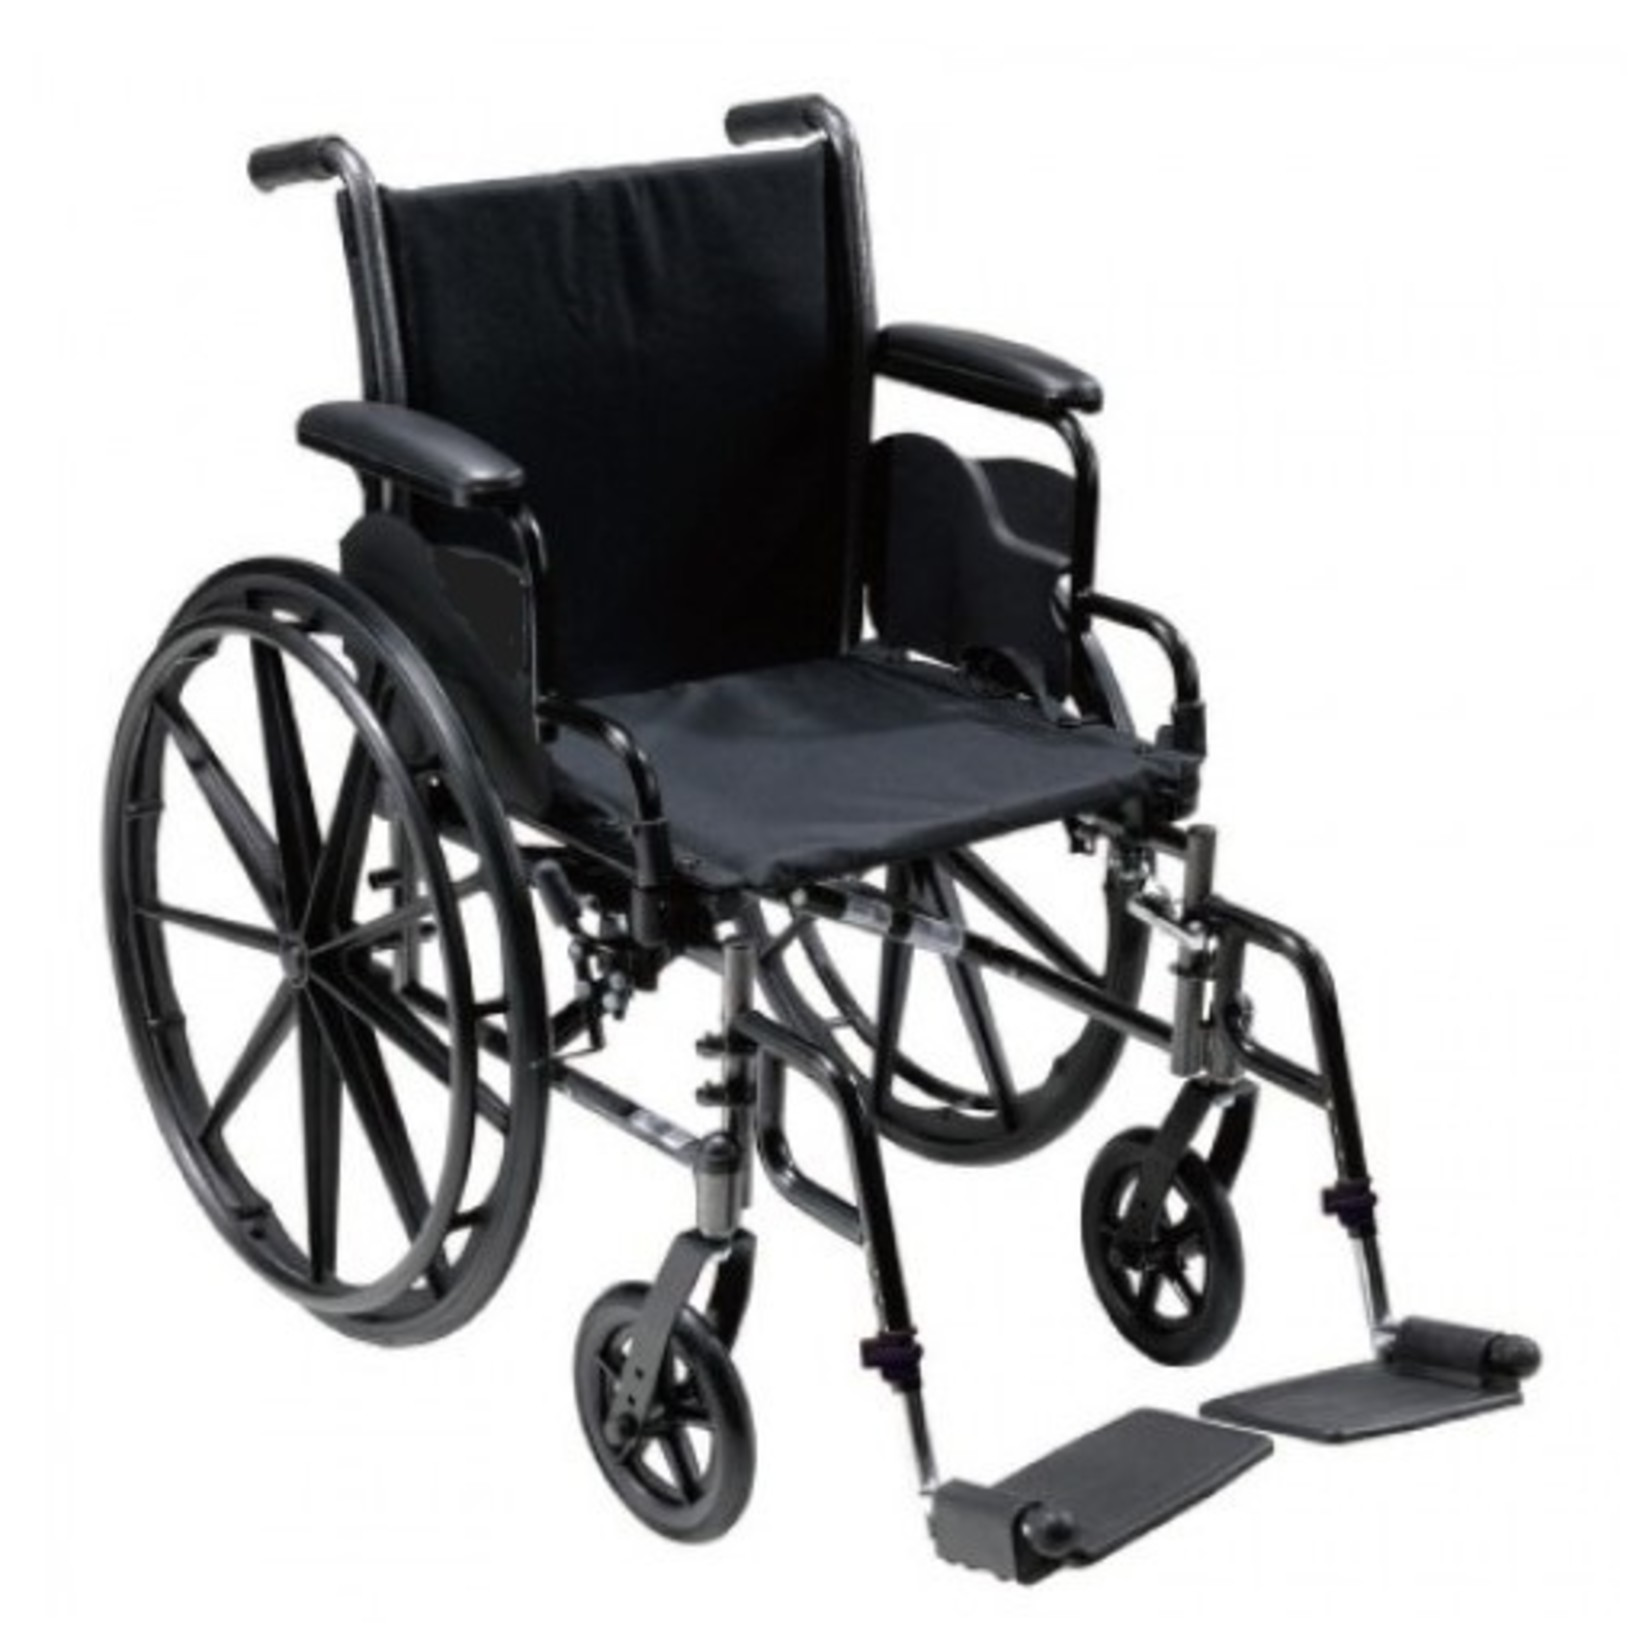 MOBB Wheelchair - Lightweight with desk arms